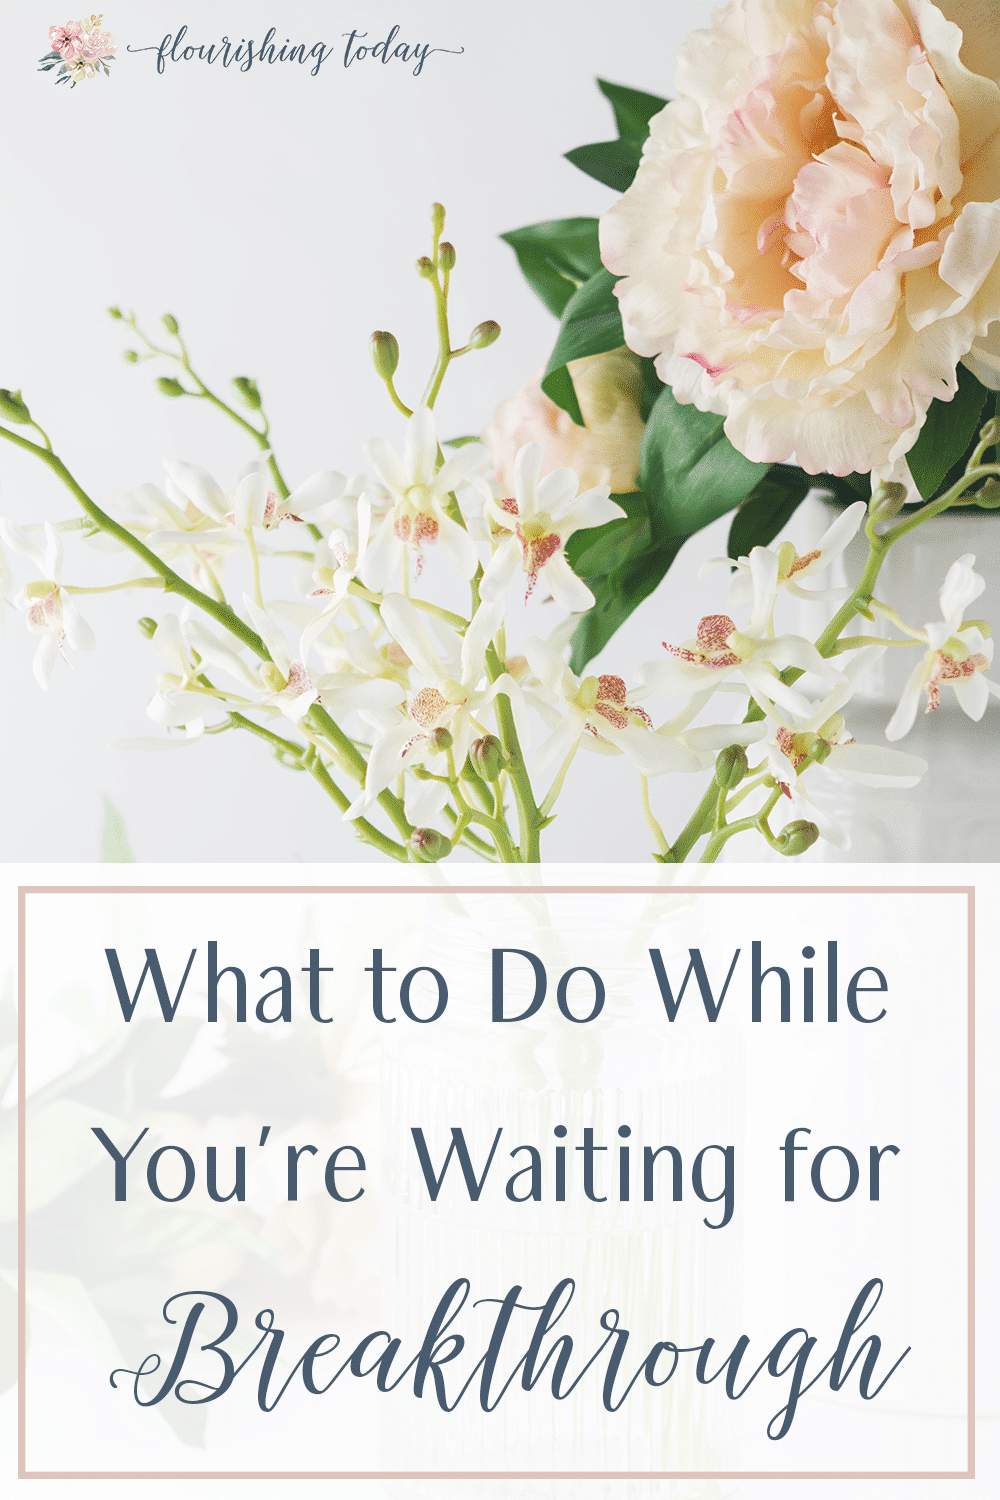 Are there places in your life that seem dead or forgotten? How do you hang on to hope while your waiting for God's timing? Here are a few things to do while your waiting for breakthrough. #breakthrough #waiting #Godstiming